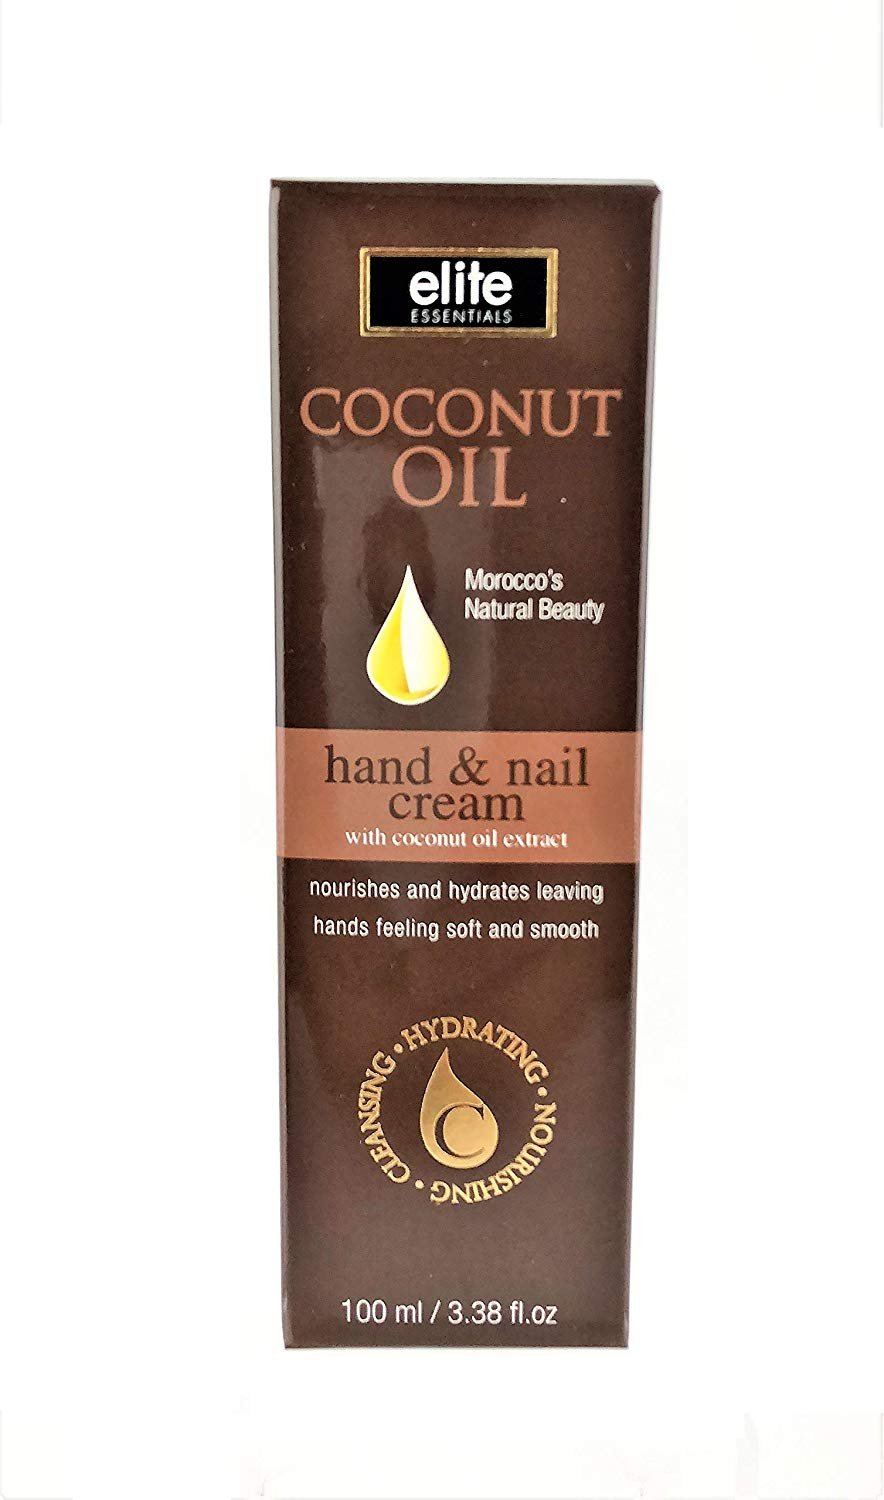 Coconut Oil Hand & Nail Cream by Elite Essentials - with Coconut Oil Extract (3.38 fl. oz.)